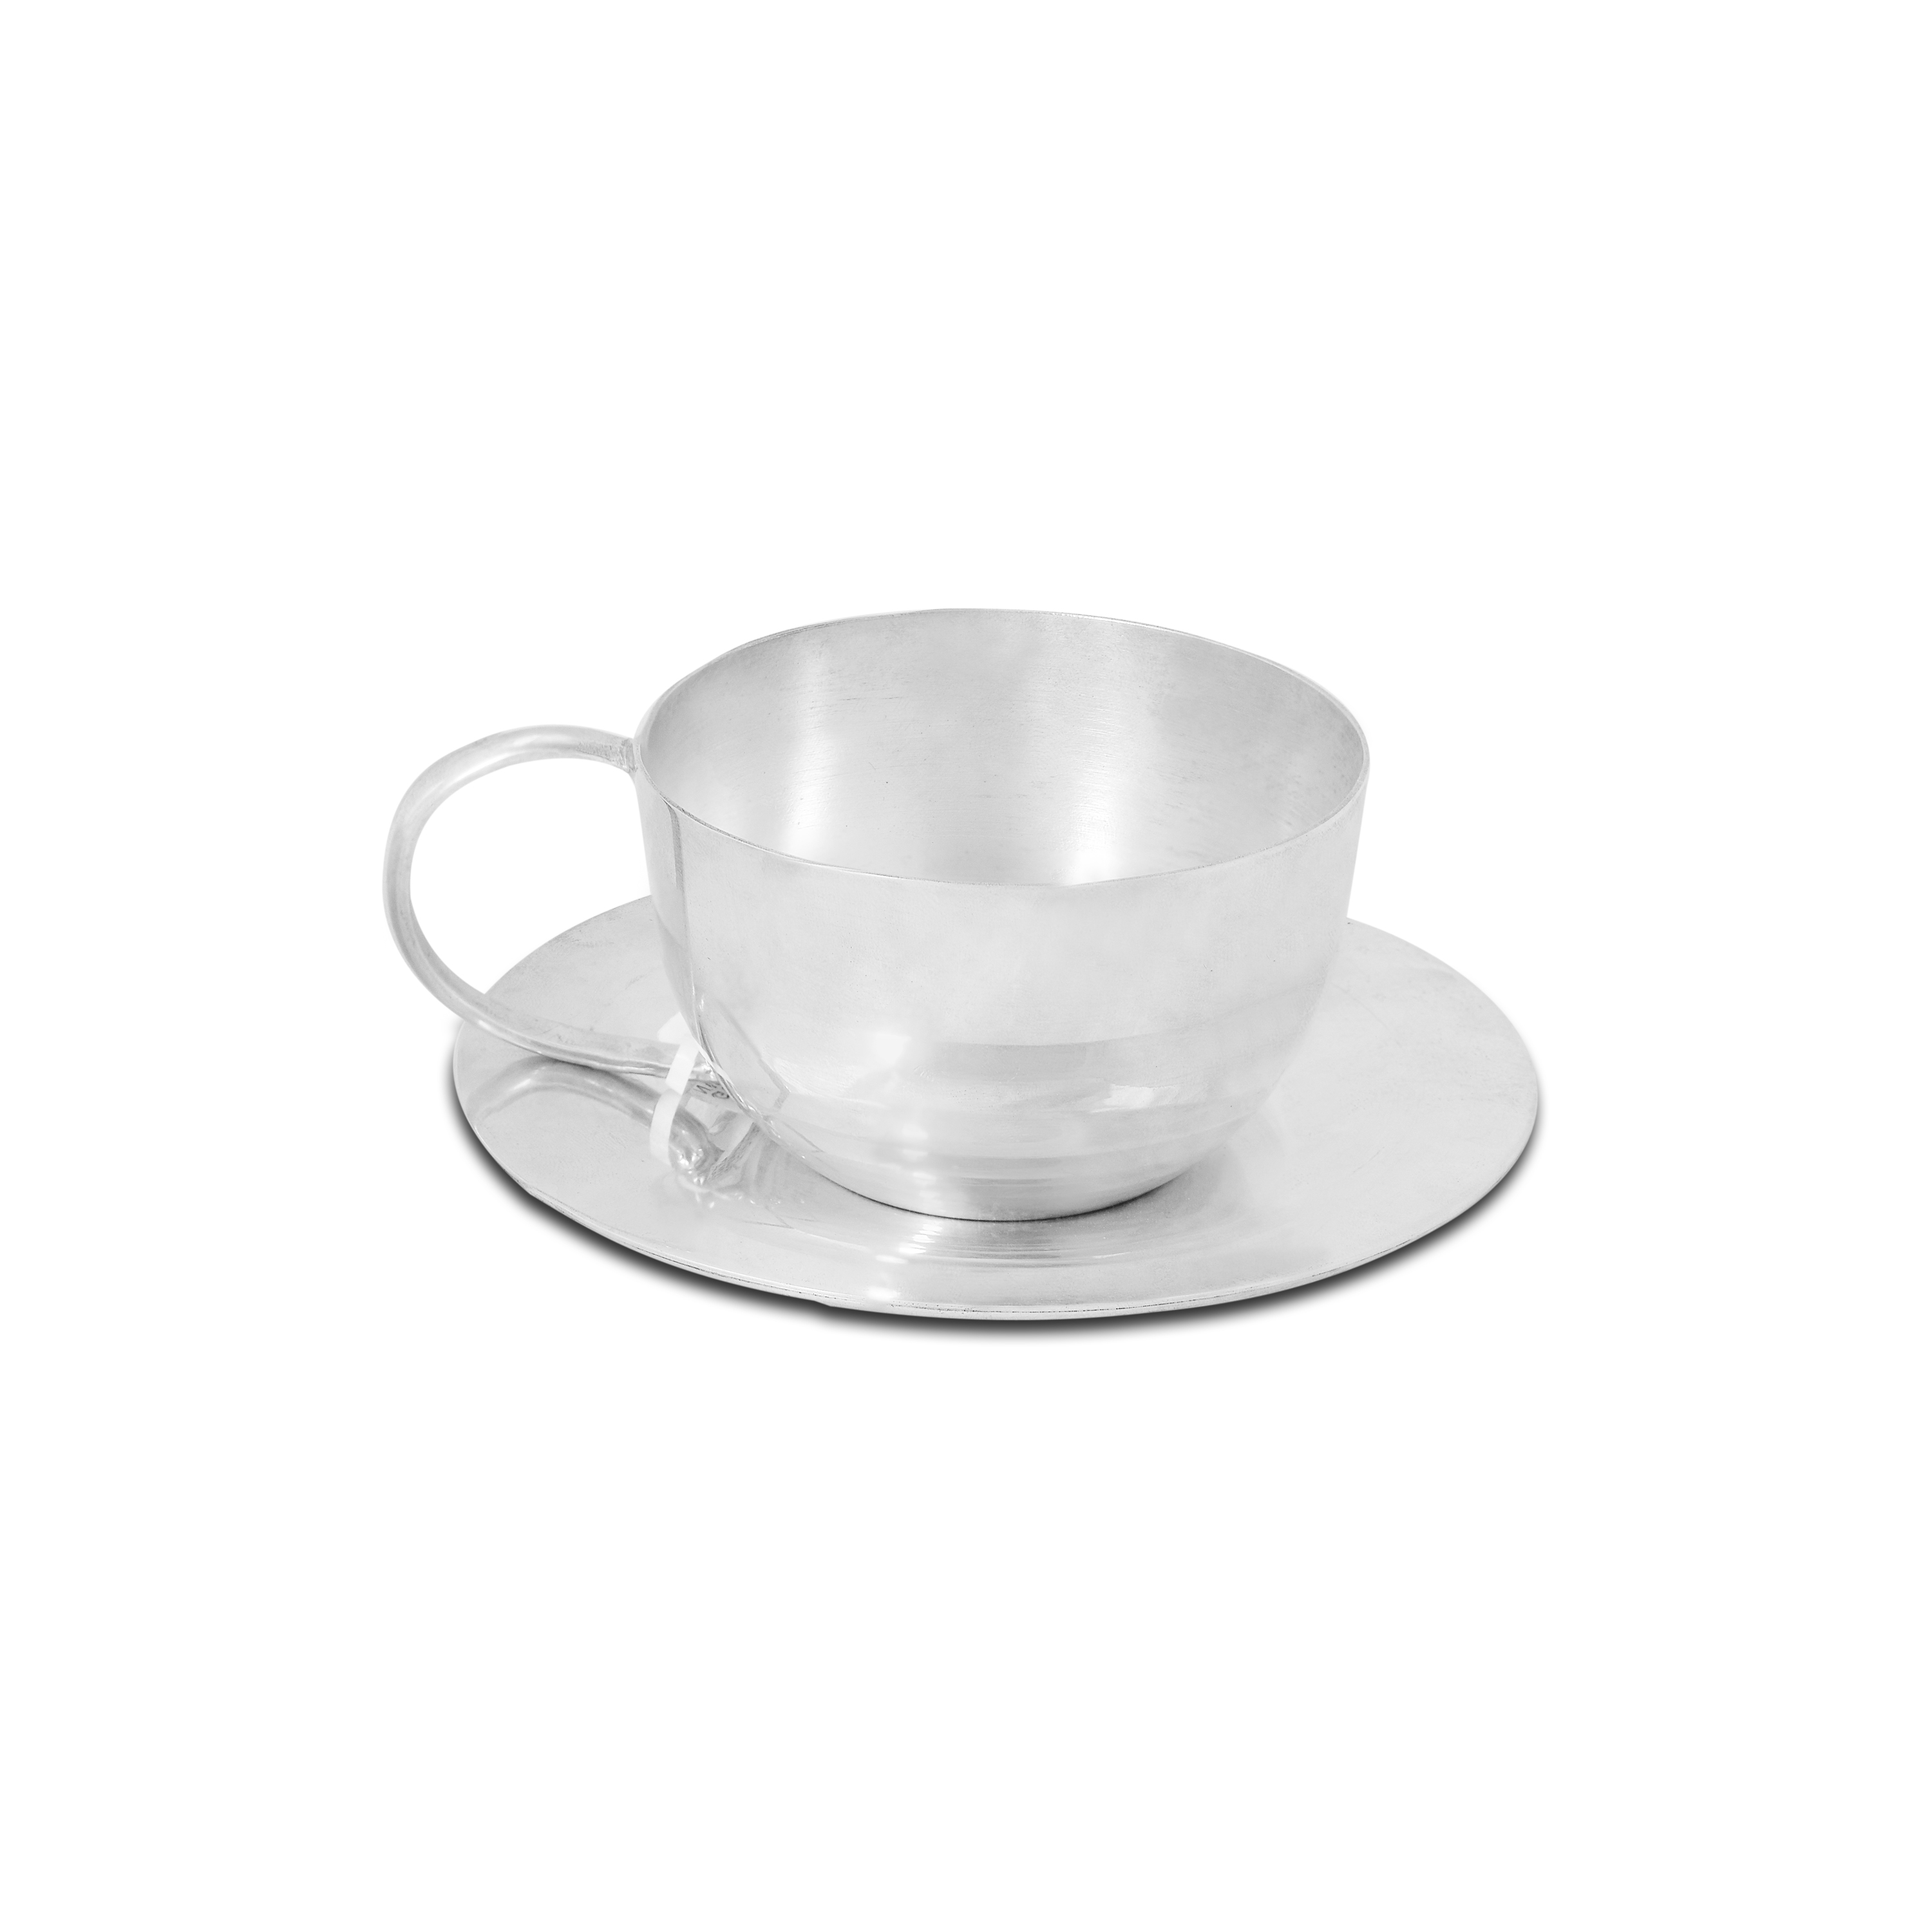 Pristine Silver Cup and Saucer Set by PNG Jewellers.